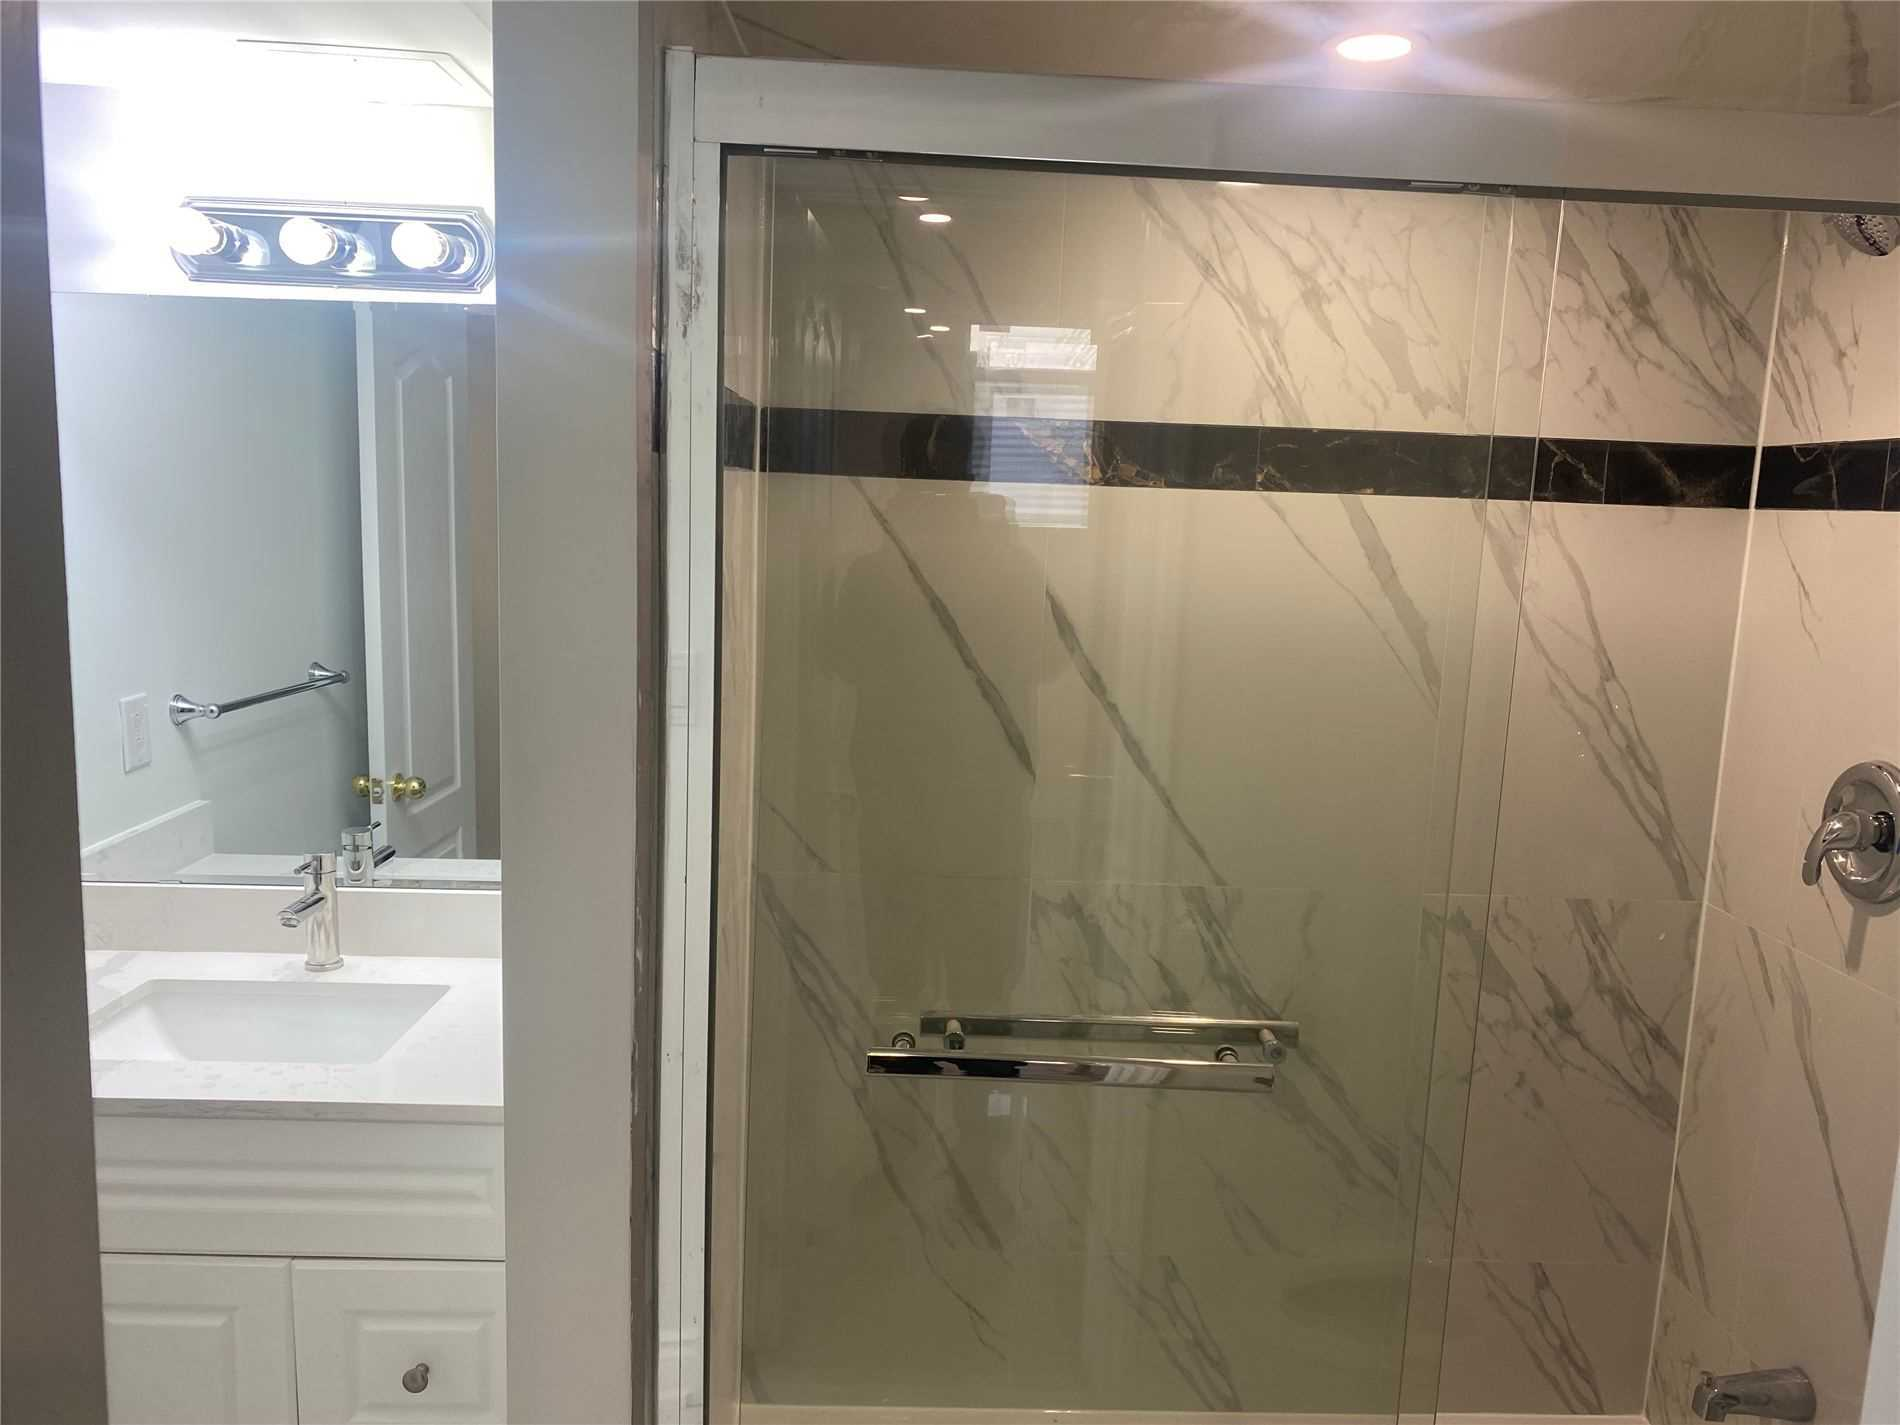 Detached house For Lease In Milton - 1031 Blain St, Milton, Ontario, Canada L9T6S1 , 2 Bedrooms Bedrooms, ,1 BathroomBathrooms,Detached,For Lease,Blain